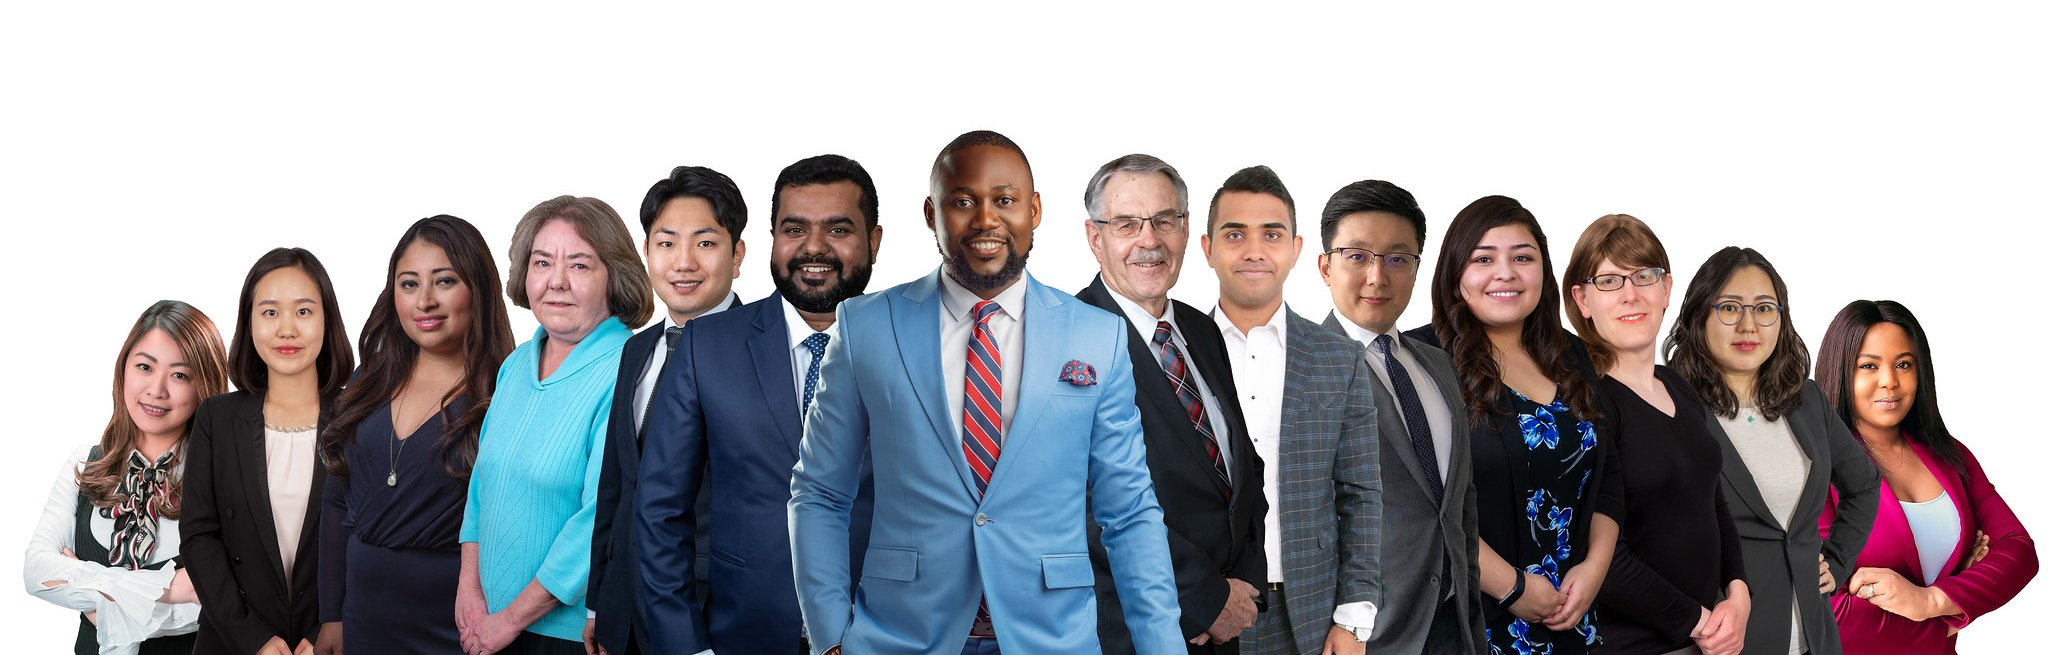 CALGARY EMPLOYMENT LAWYER & MANAGING PARTNER CHARLES OSUJI AWARDED AS ONE OF CANADA'S TOP 25 MOST INFLUENTIAL LAWYERS BY CANADIAN LAWYER MAGAZINE